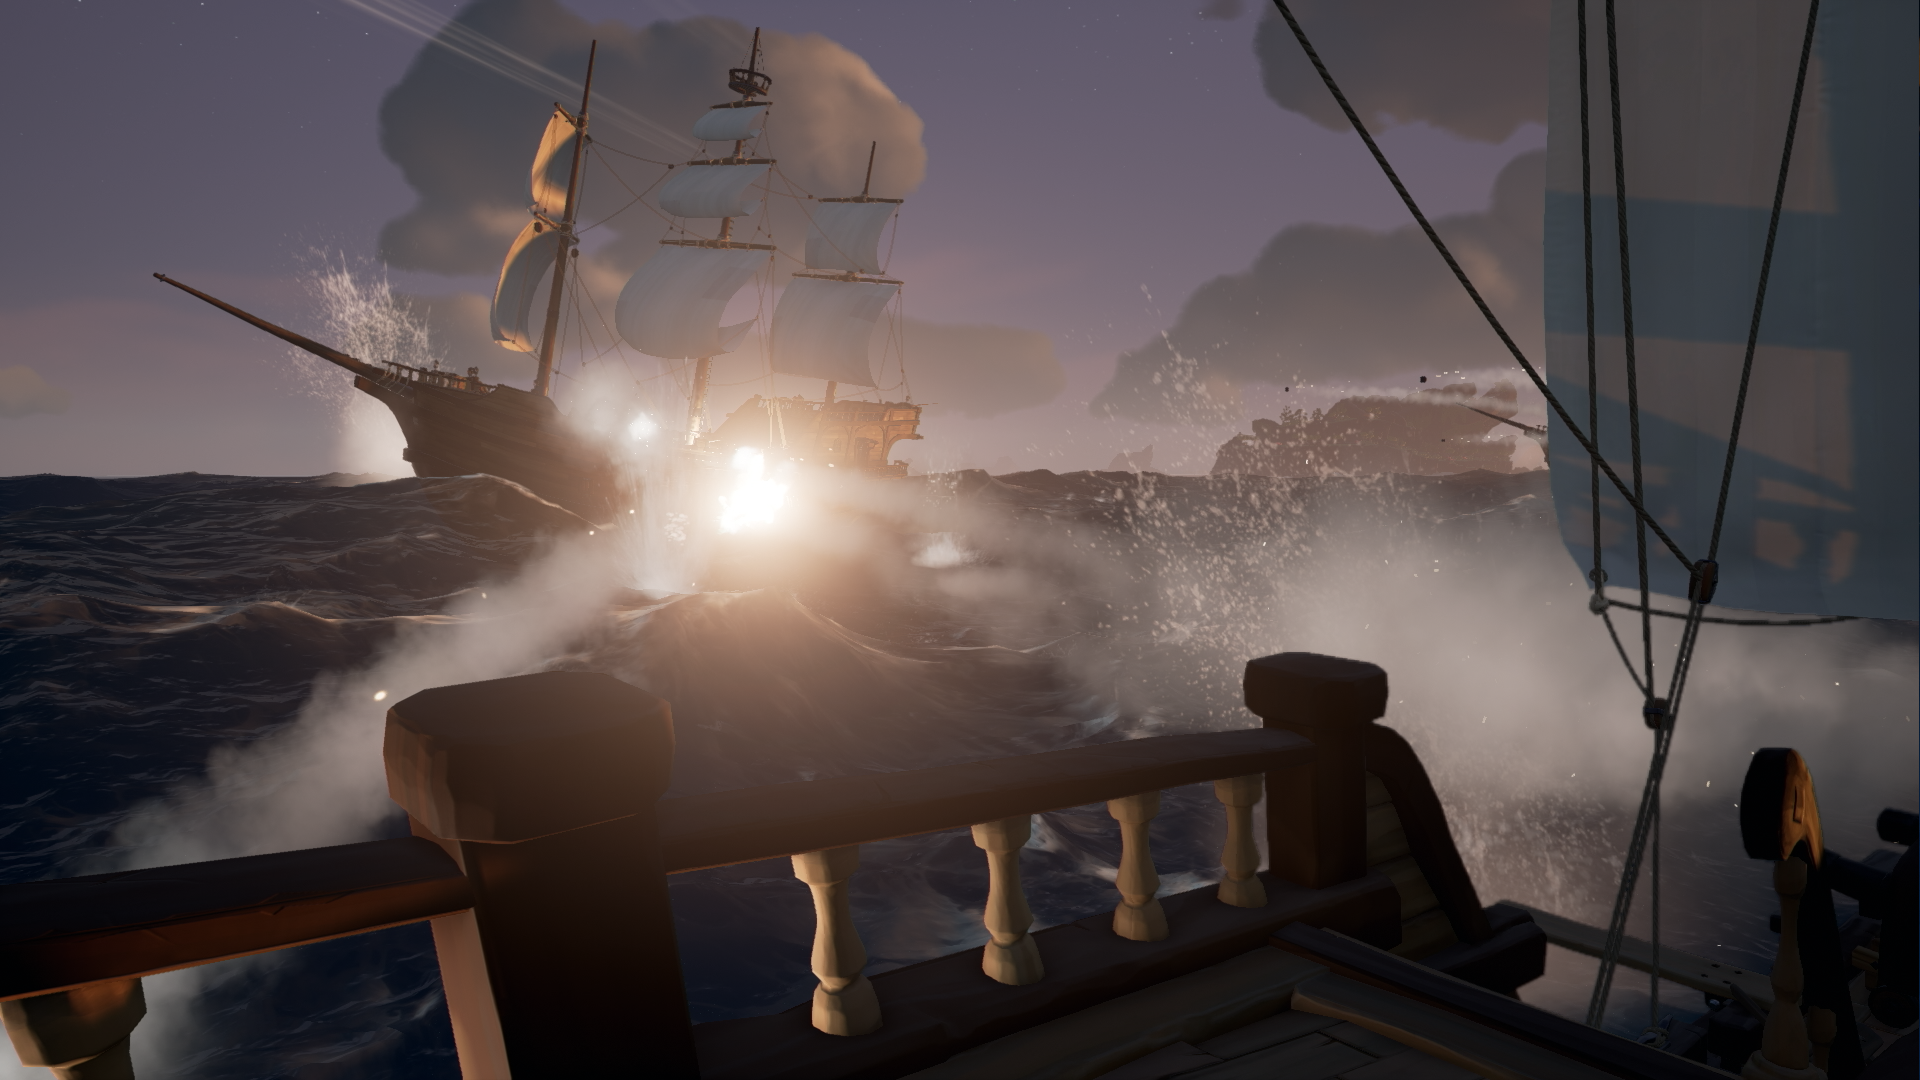 Sea of Thieves announces its Closed Technical Alpha Test for Windows 10 users